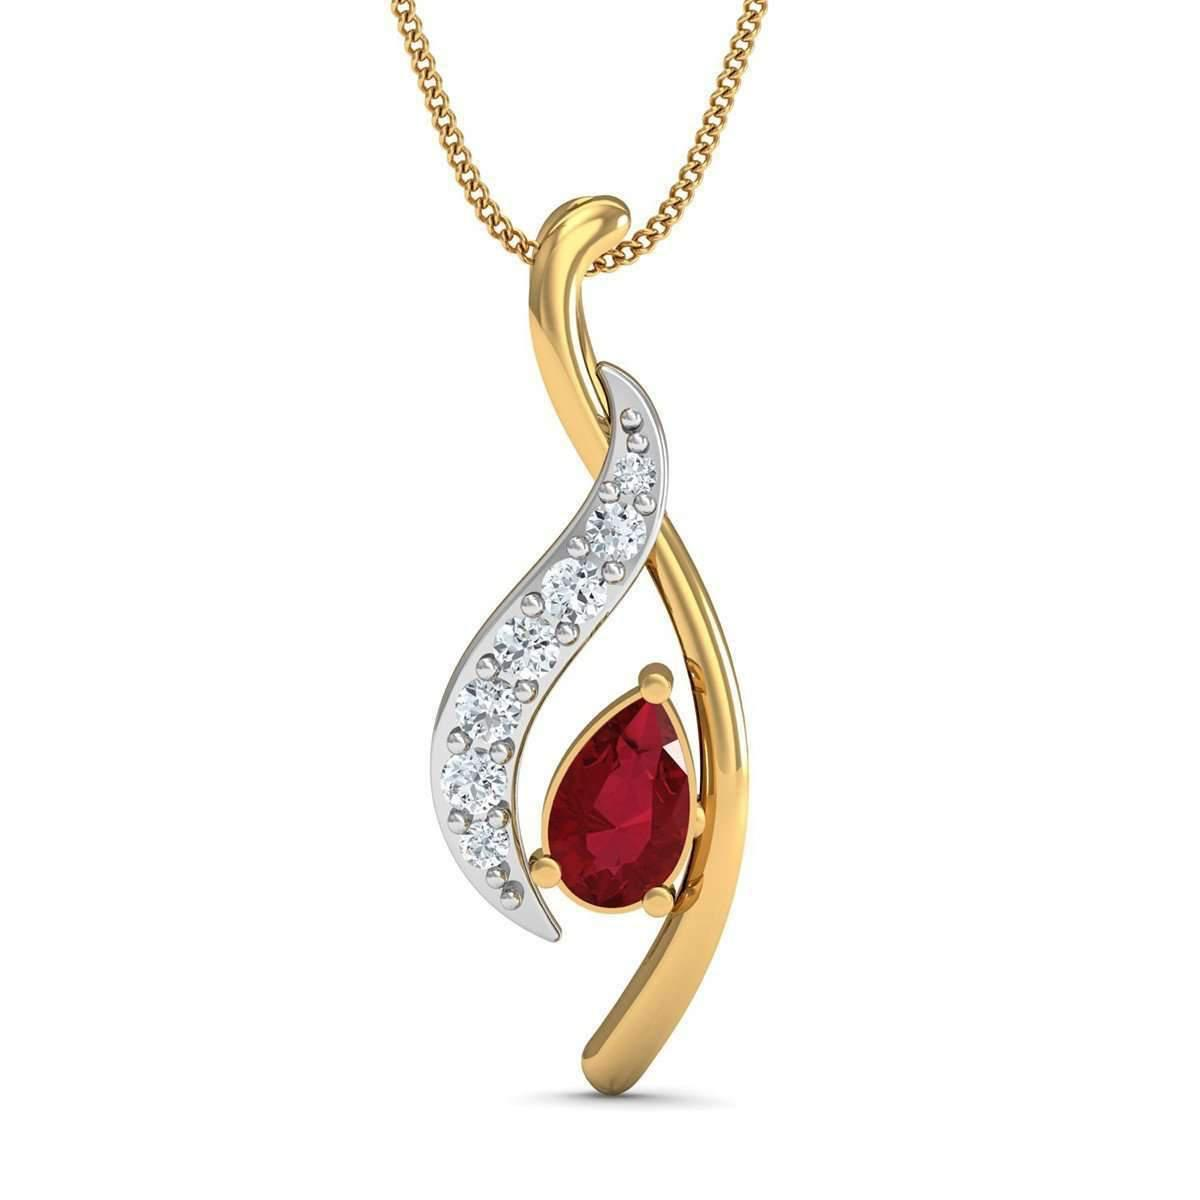 Diamoire Jewels Premium Diamonds and Hand-carved 14kt Yellow Gold Nature Inspired Pendant